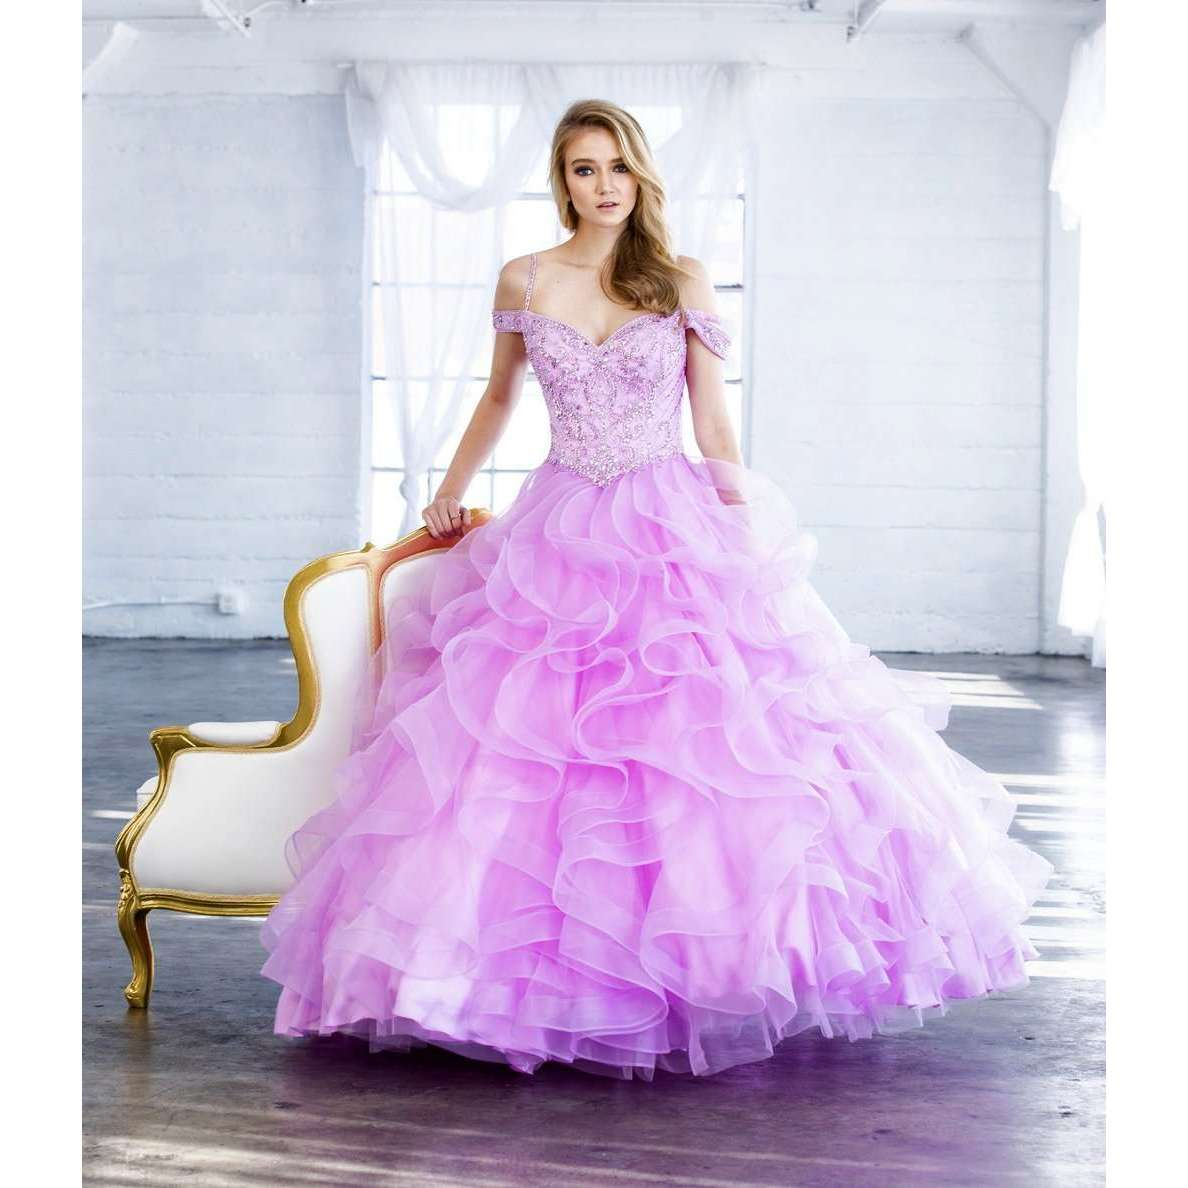 Beaded Embroidery and Ruffled Tulle Ballgown 1421 - Julietdresses